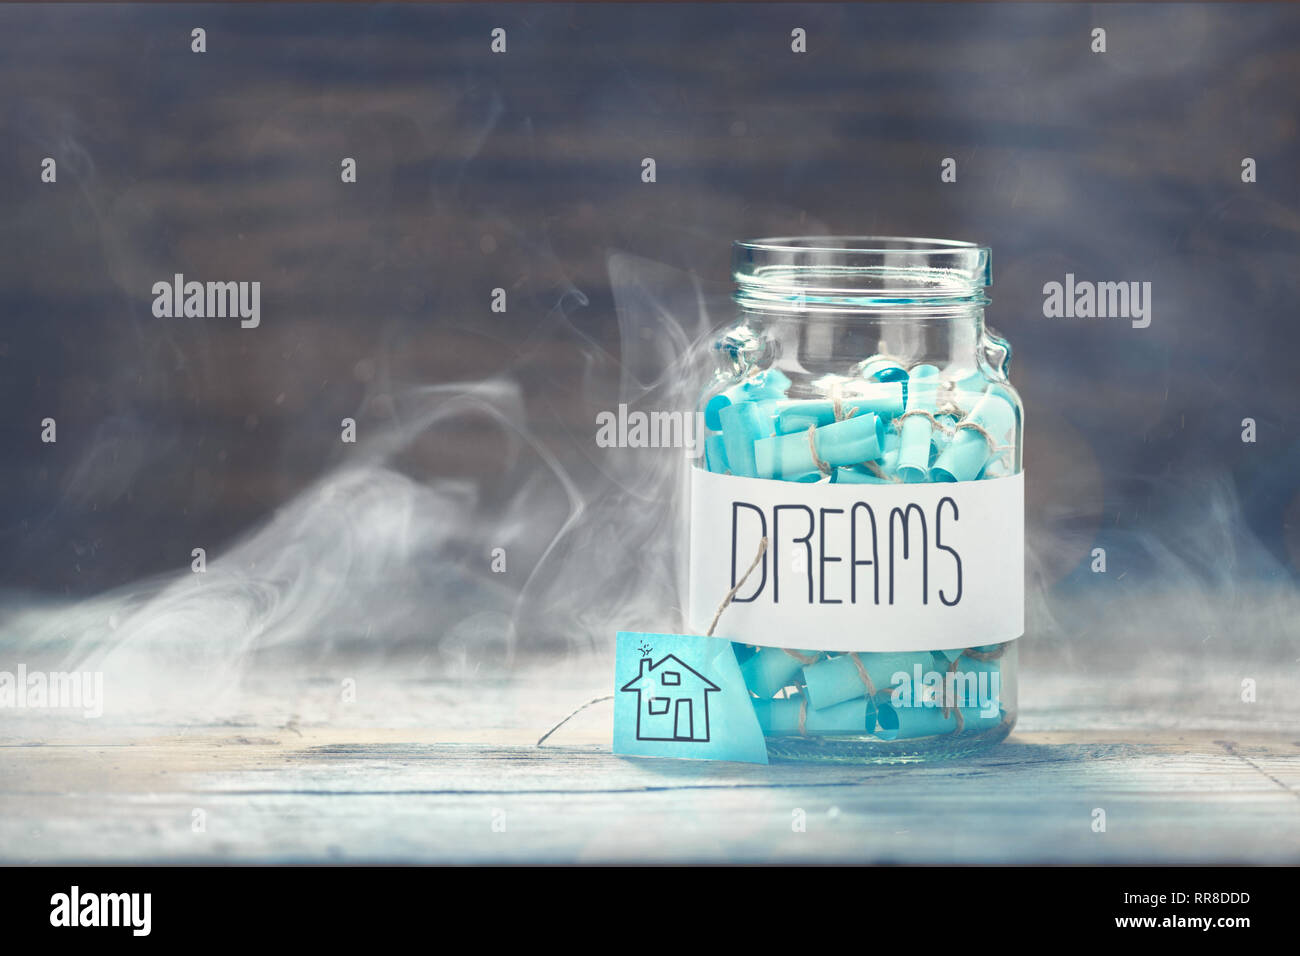 Dreams jar. Dream house concept. Full glass jar of cherished wishes Stock Photo